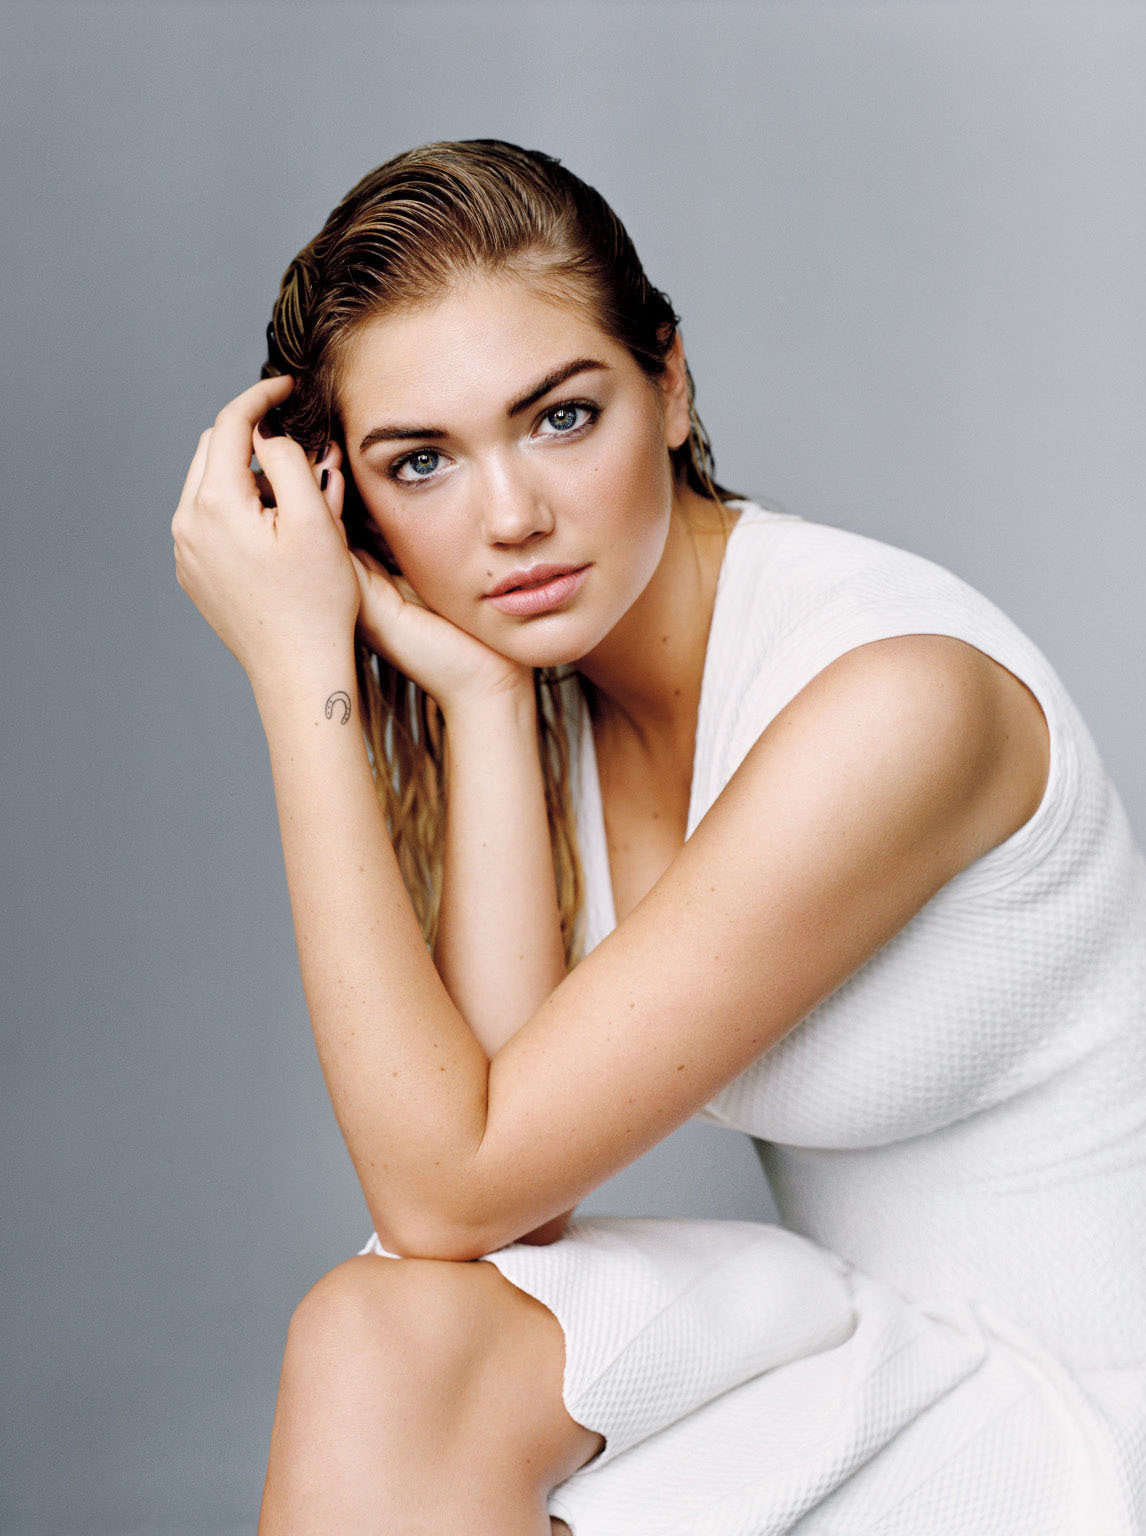 bohemea:  Kate Upton - Vogue UK by Alasdair McLellan, January 2013